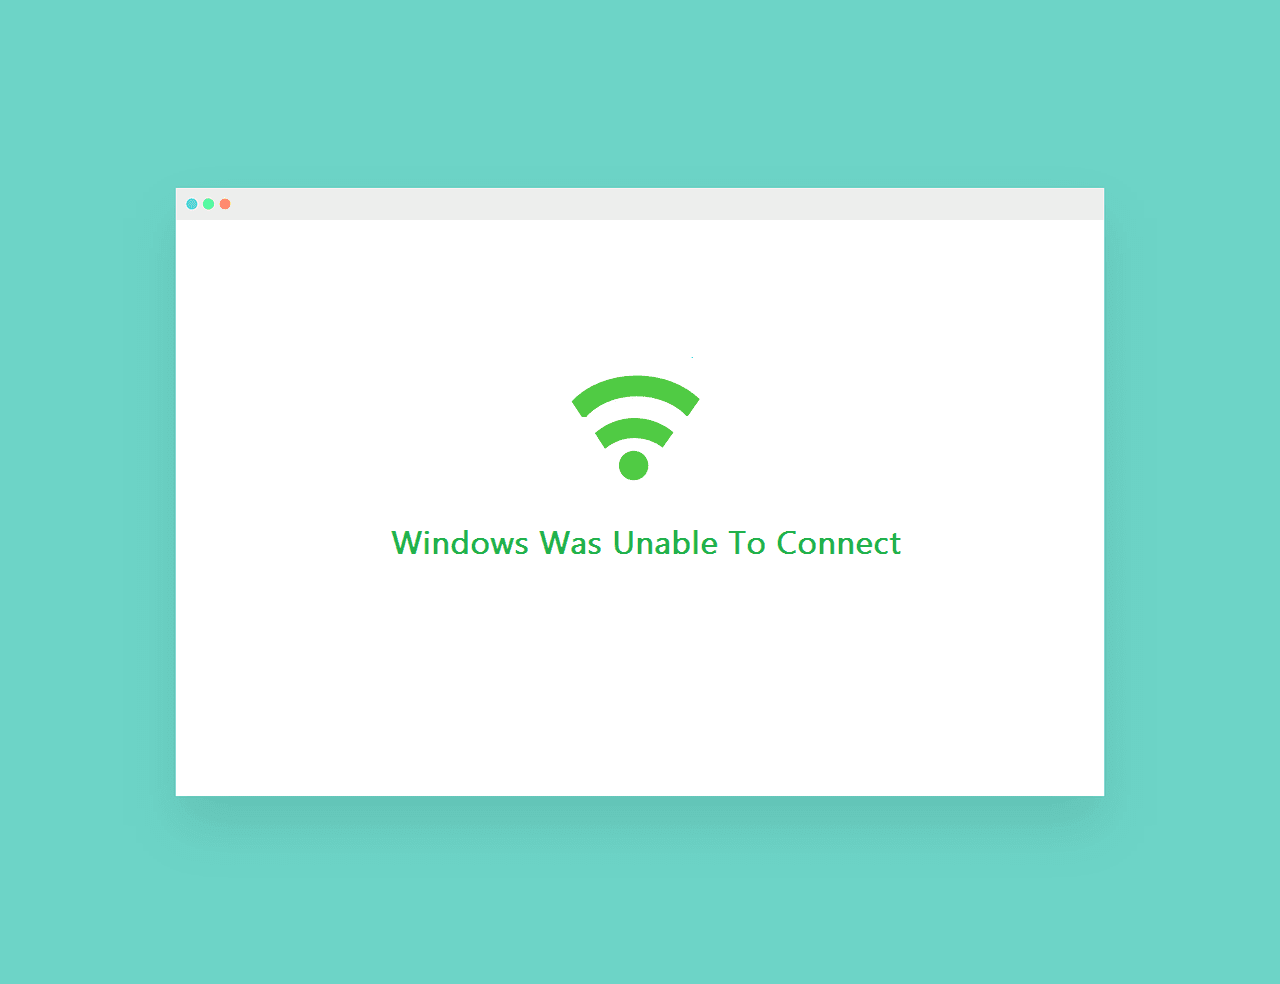 Mengatasi Windows Was Unable To Connect